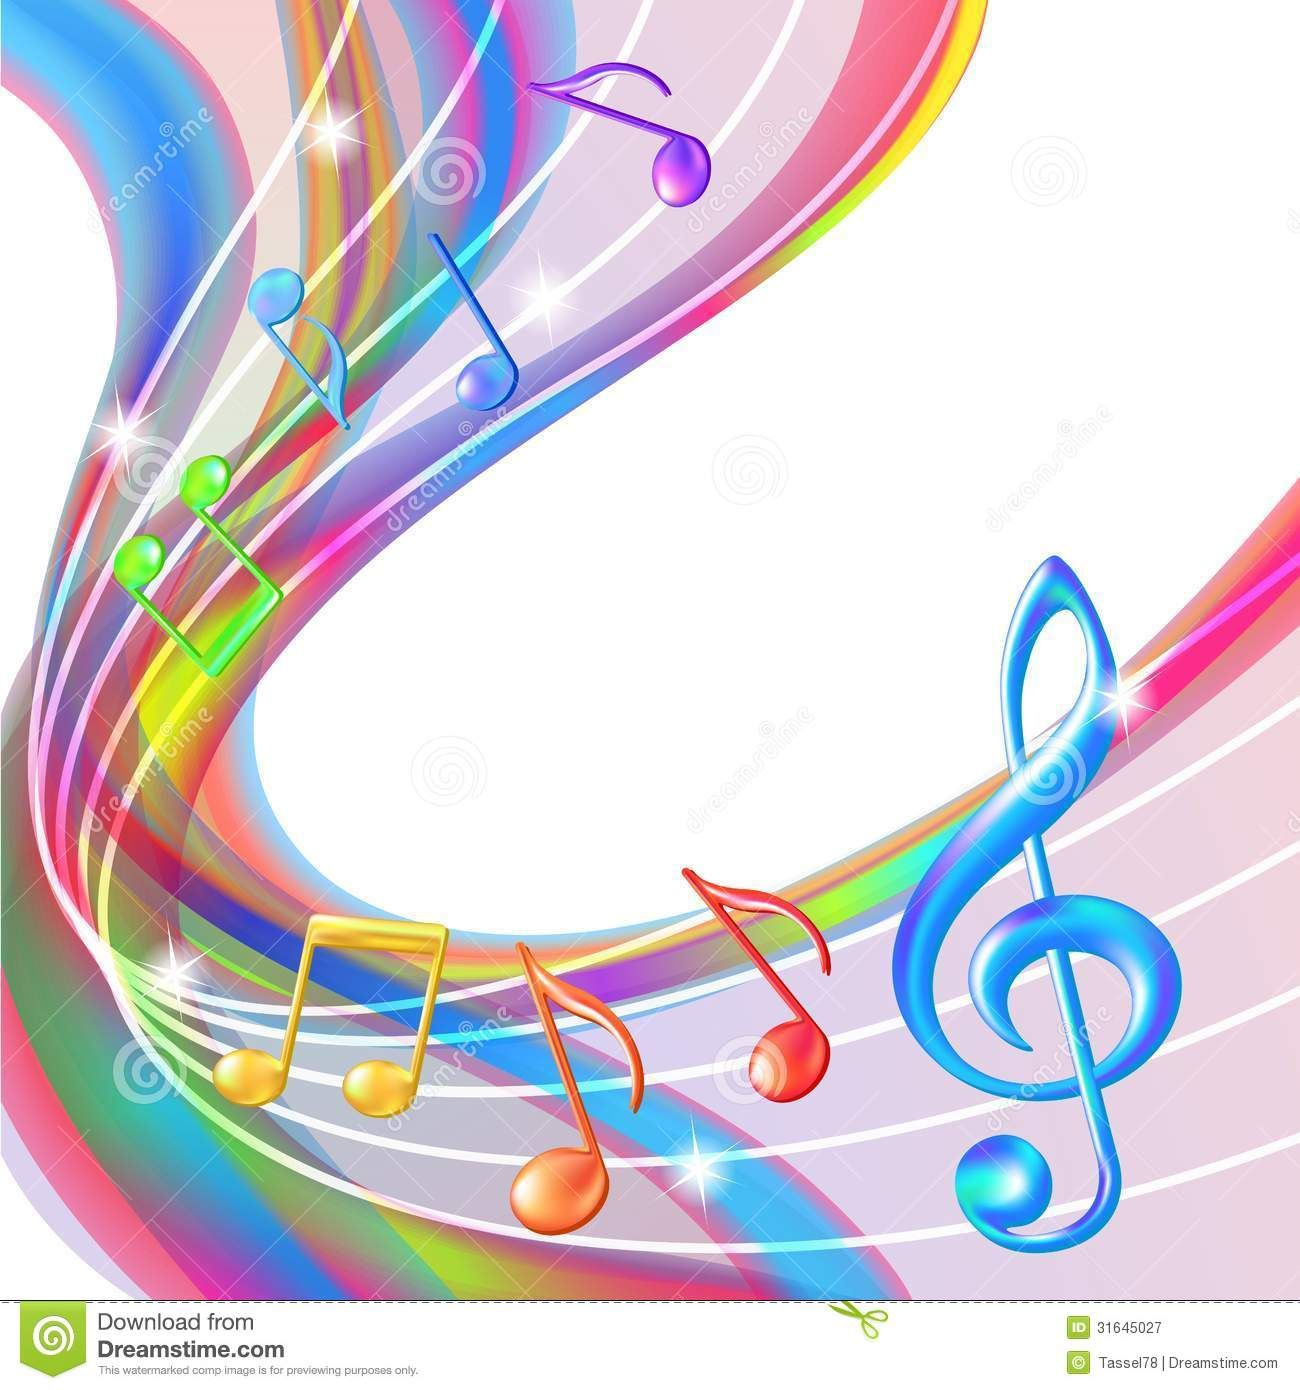 Colorful Abstract Notes Music Background  - Download From